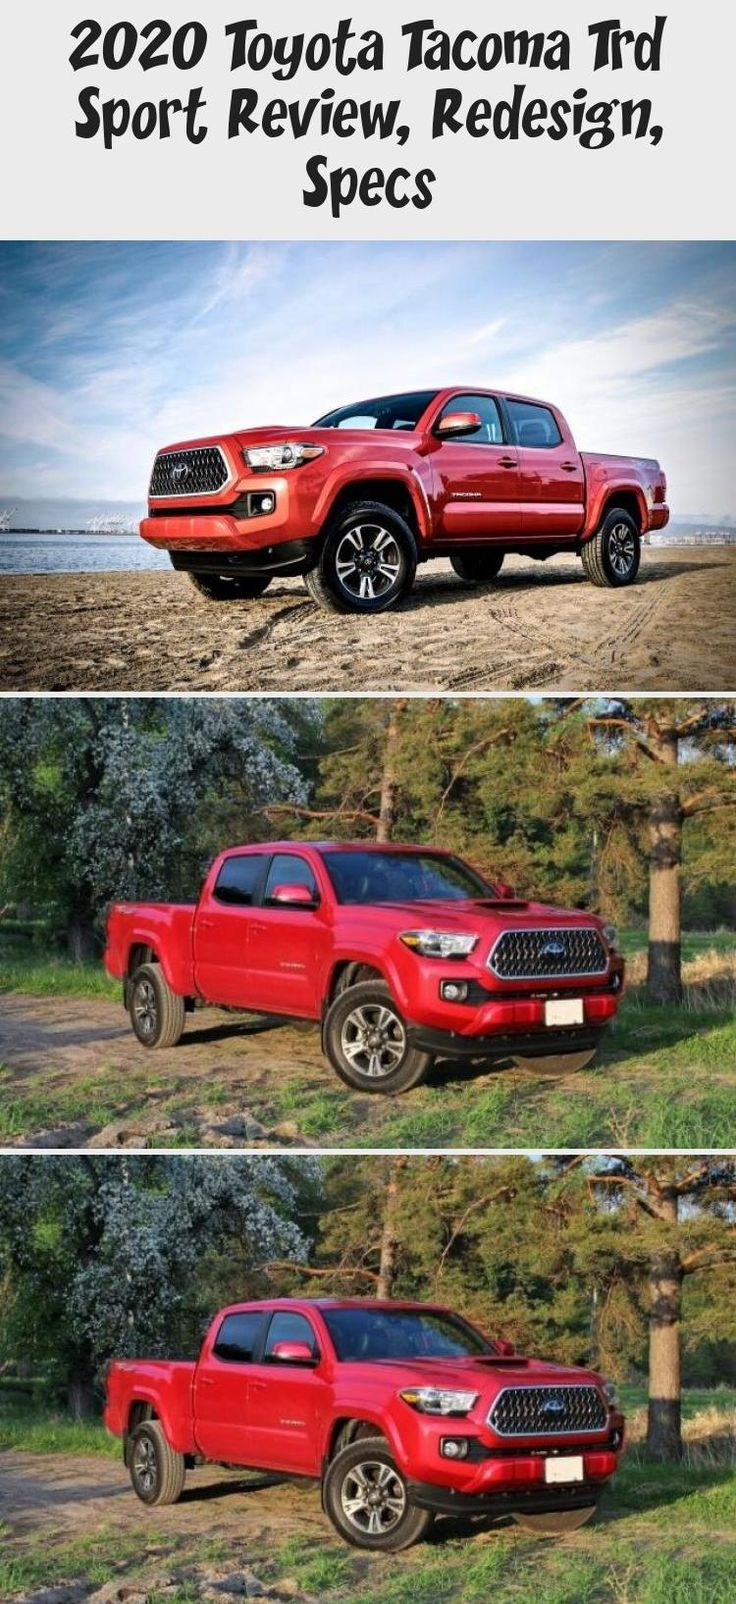 2020 Toyota Trd Sport Review, Redesign, Specs in